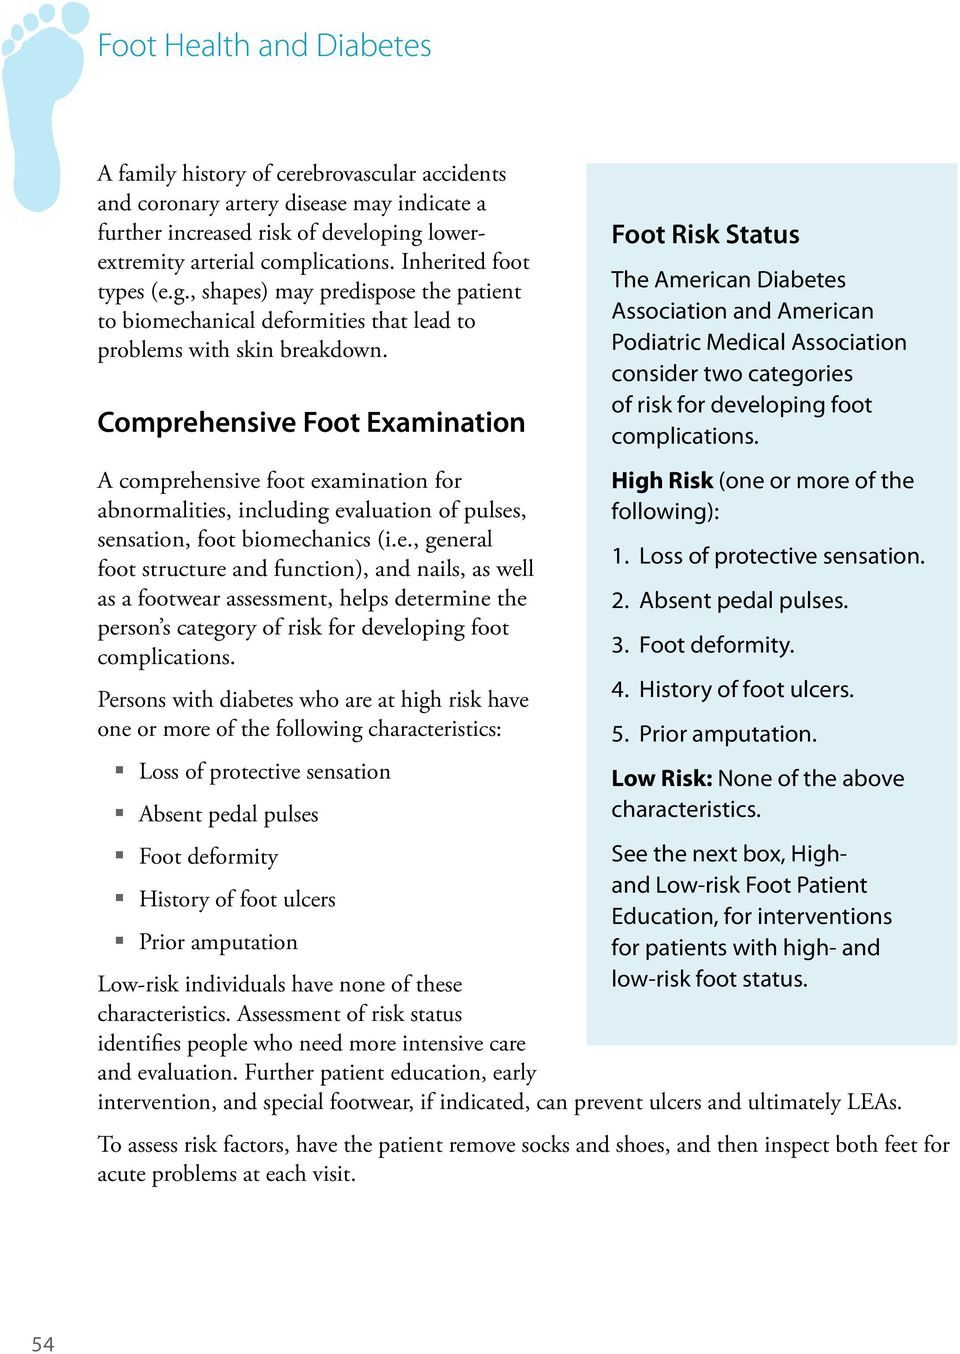 Comprehensive Foot Examination A comprehensive foot examination for abnormalities, including evaluation of pulses, sensation, foot biomechanics (i.e., general foot structure and function), and nails, as well as a footwear assessment, helps determine the person s category of risk for developing foot complications.